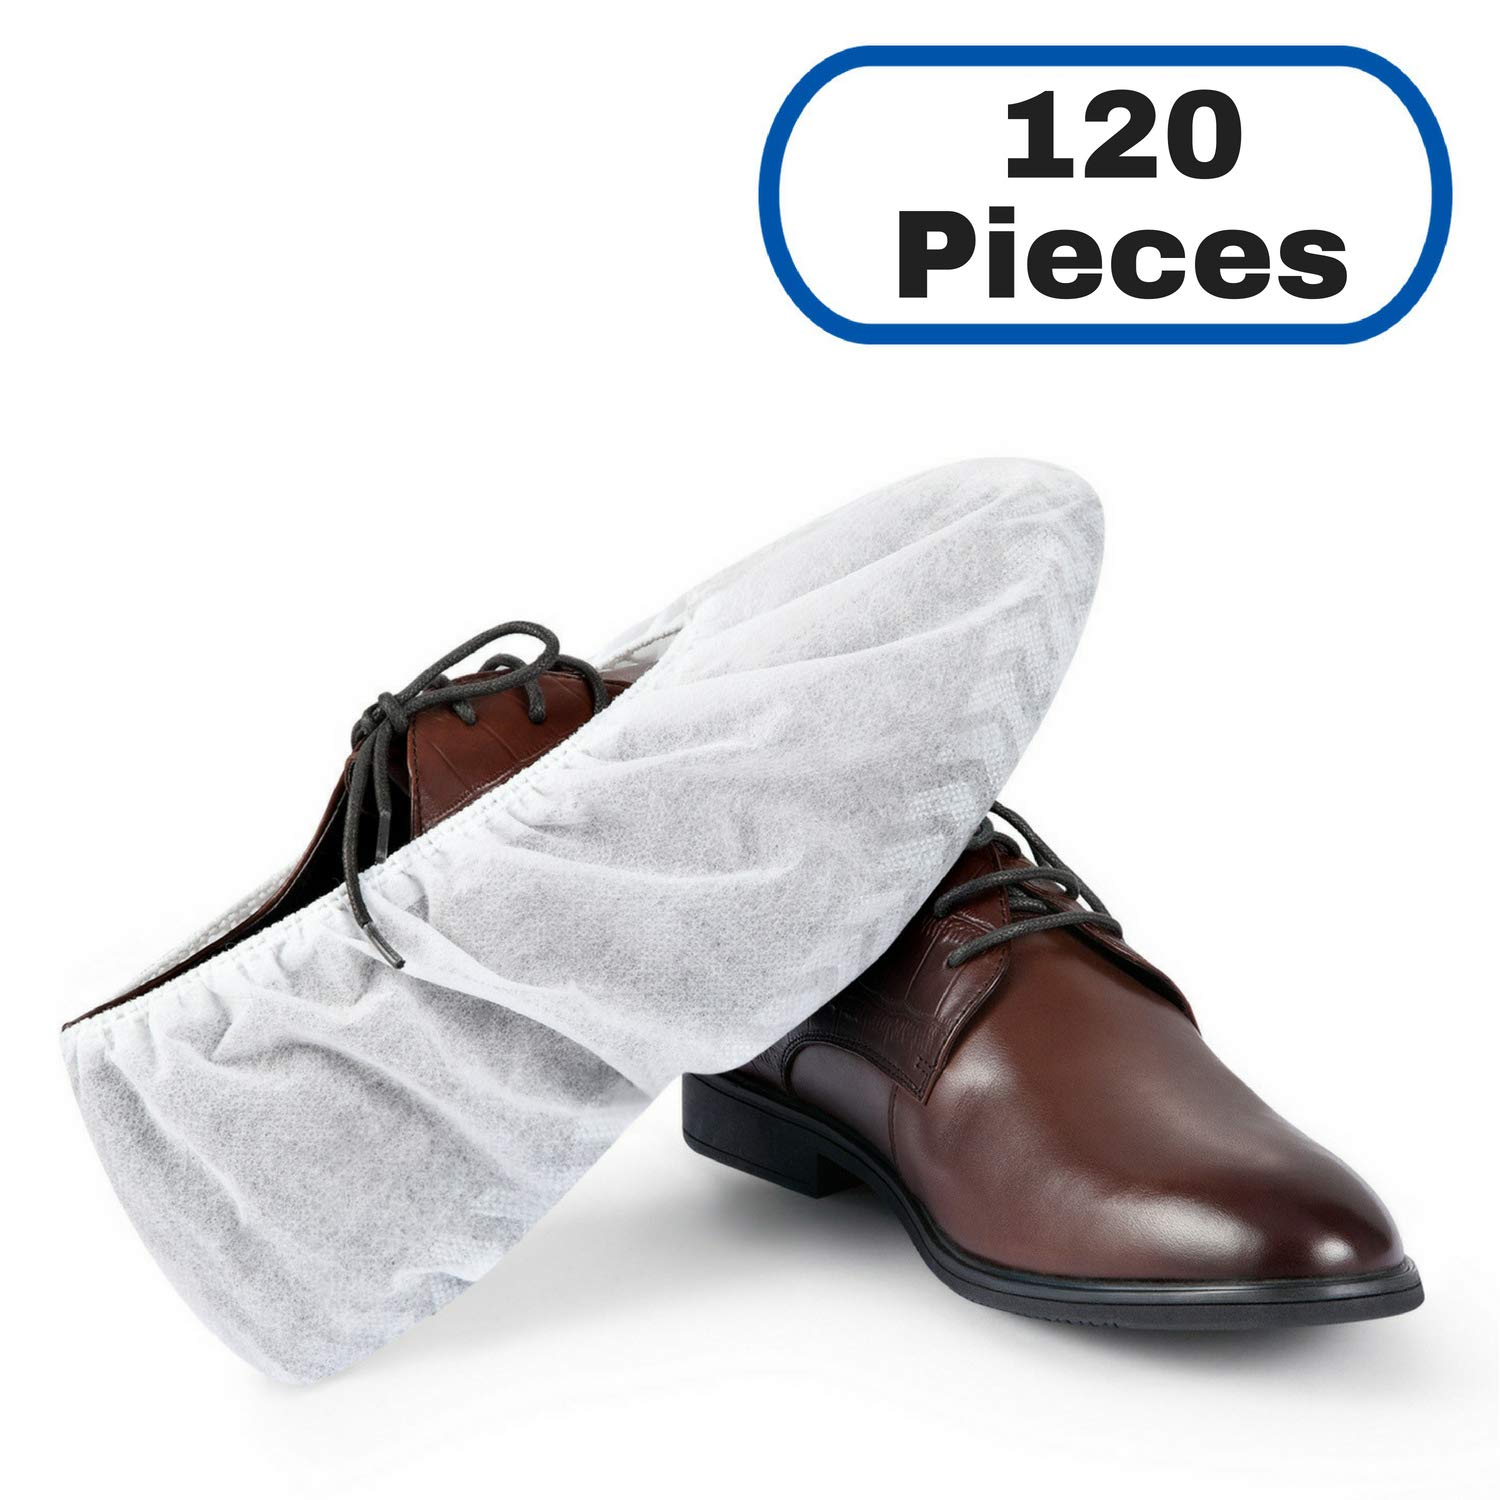 MIFFLIN Disposable Shoe Covers (White, 120 Pieces) Non-Slip Water Resistant Durable Boot Covers Shoe Protector Surgical Booties One Size Fits Most by MIFFLIN (Image #1)